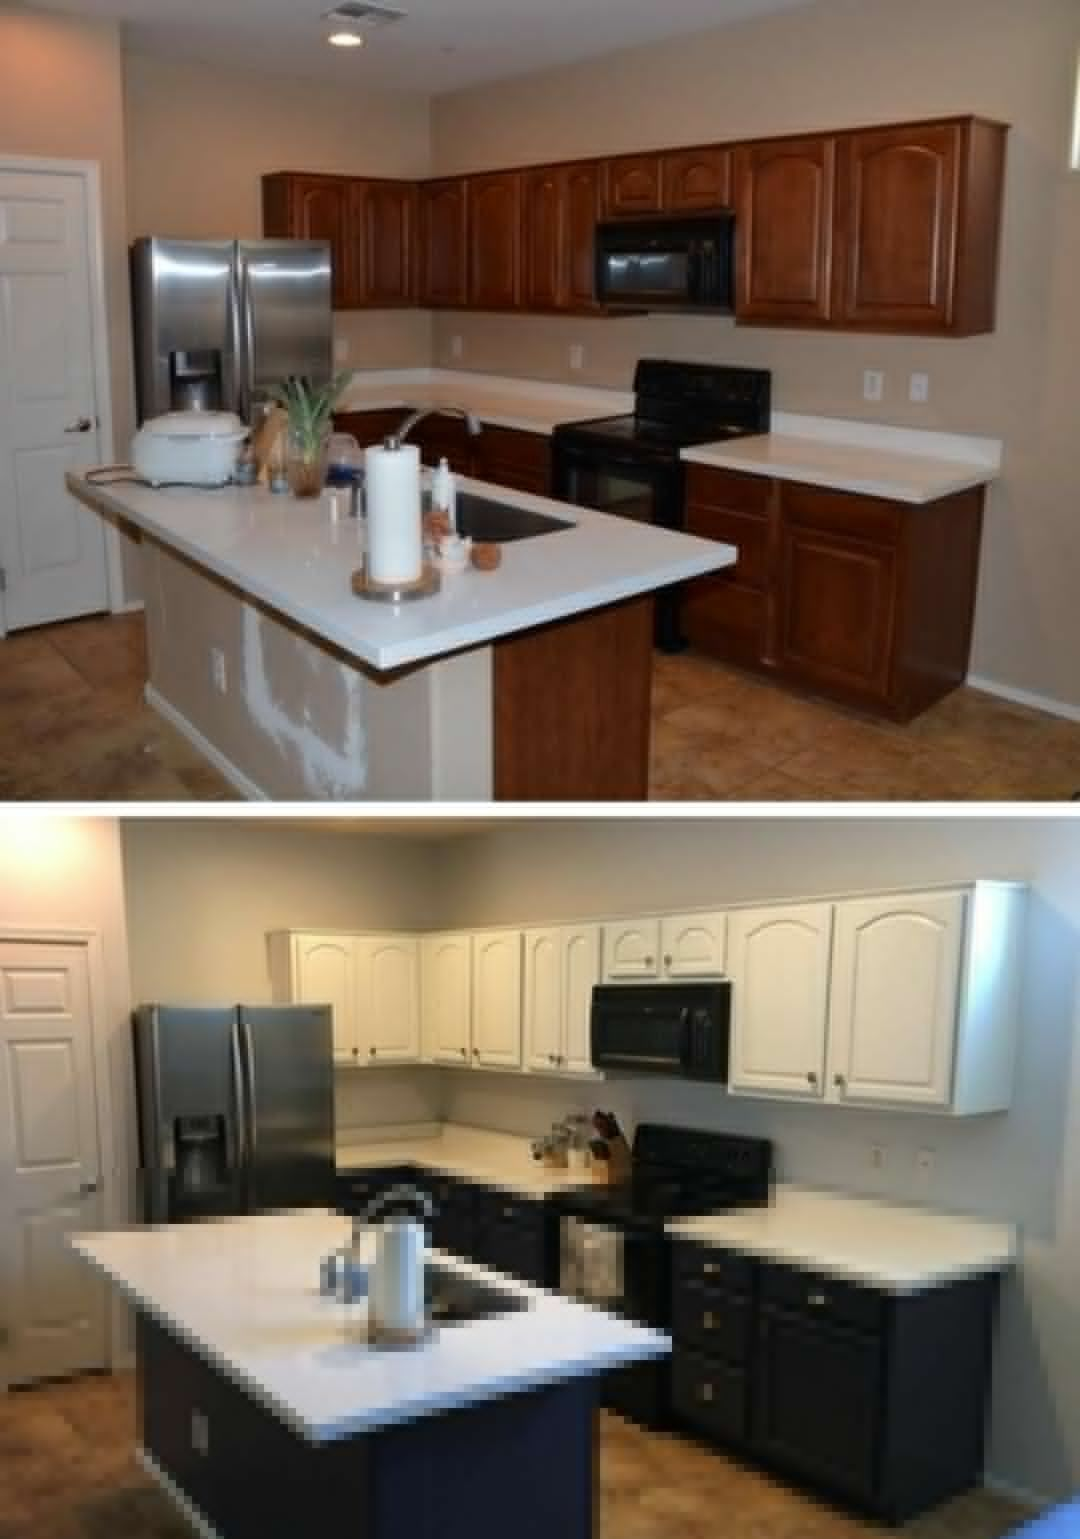 Kitchen Remodel Before And After Trendy Look And Updated Style In 2020 Kitchen Remodel Before And After Kitchen Renovation Cheap Kitchen Cabinets